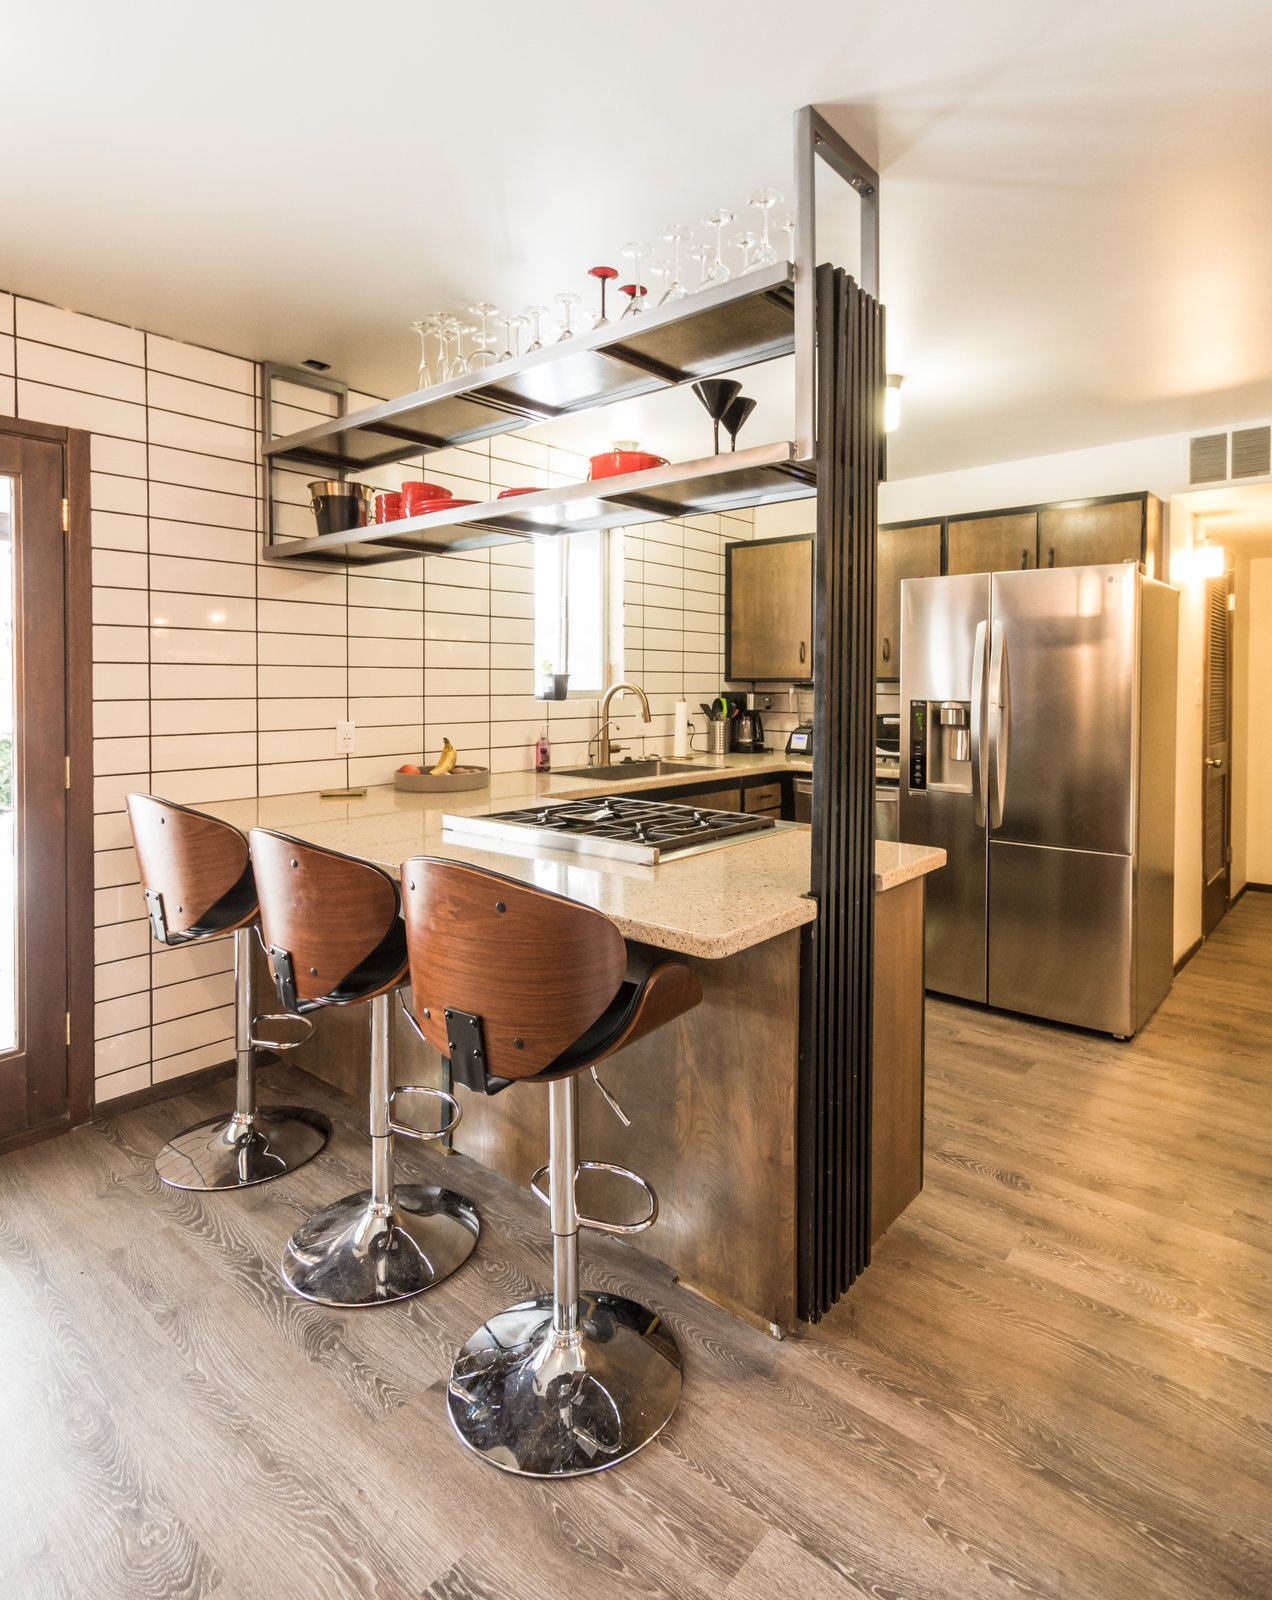 Original kitchen cabinets with new appliances, updates shelf hung from ceiling and full height back splash and original repurposed vertical wood slats  Ron Molen Revival by The Muve Group